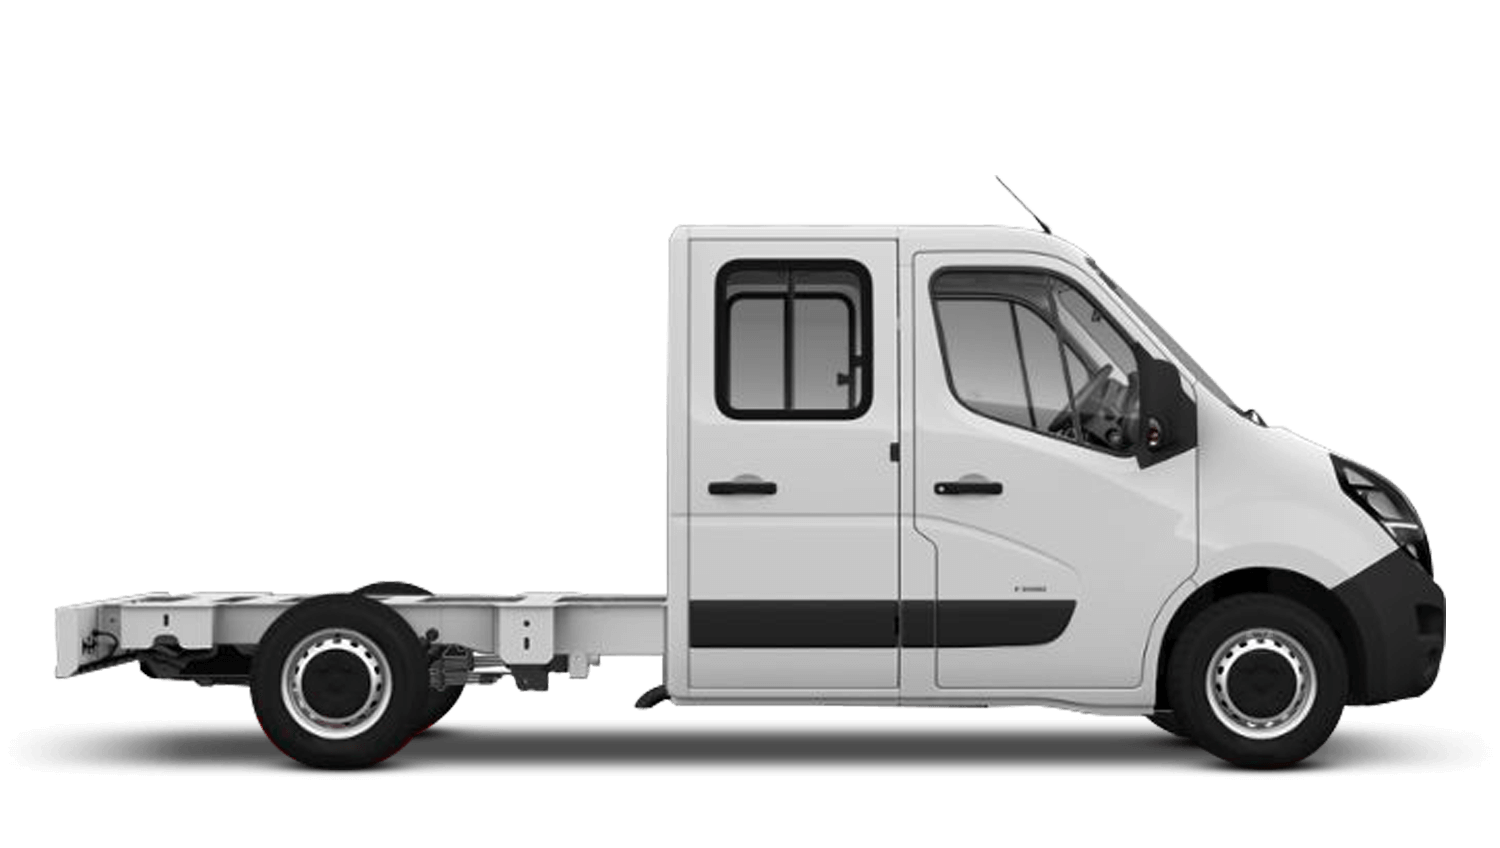 Polar White (Solid) New Vauxhall Movano Conversions